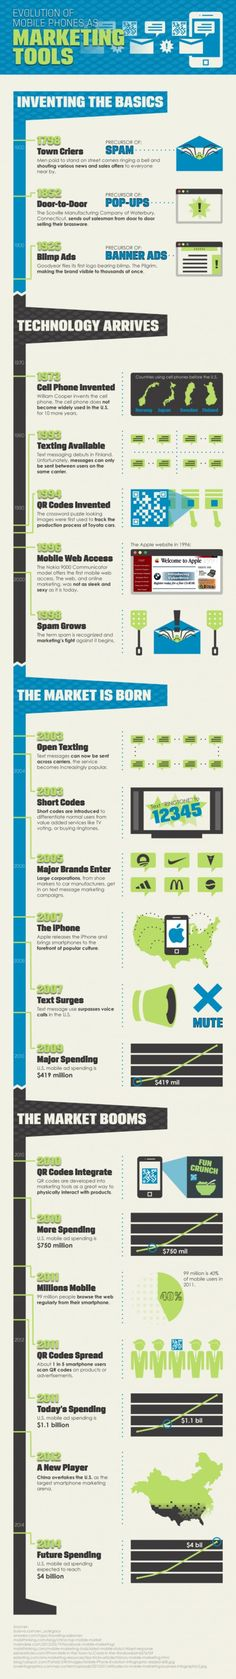 The Evolution Of Mobile Phones As Marketing Tools | For more Infographics and Resources on Digital Marketing please visit www.moverview.com